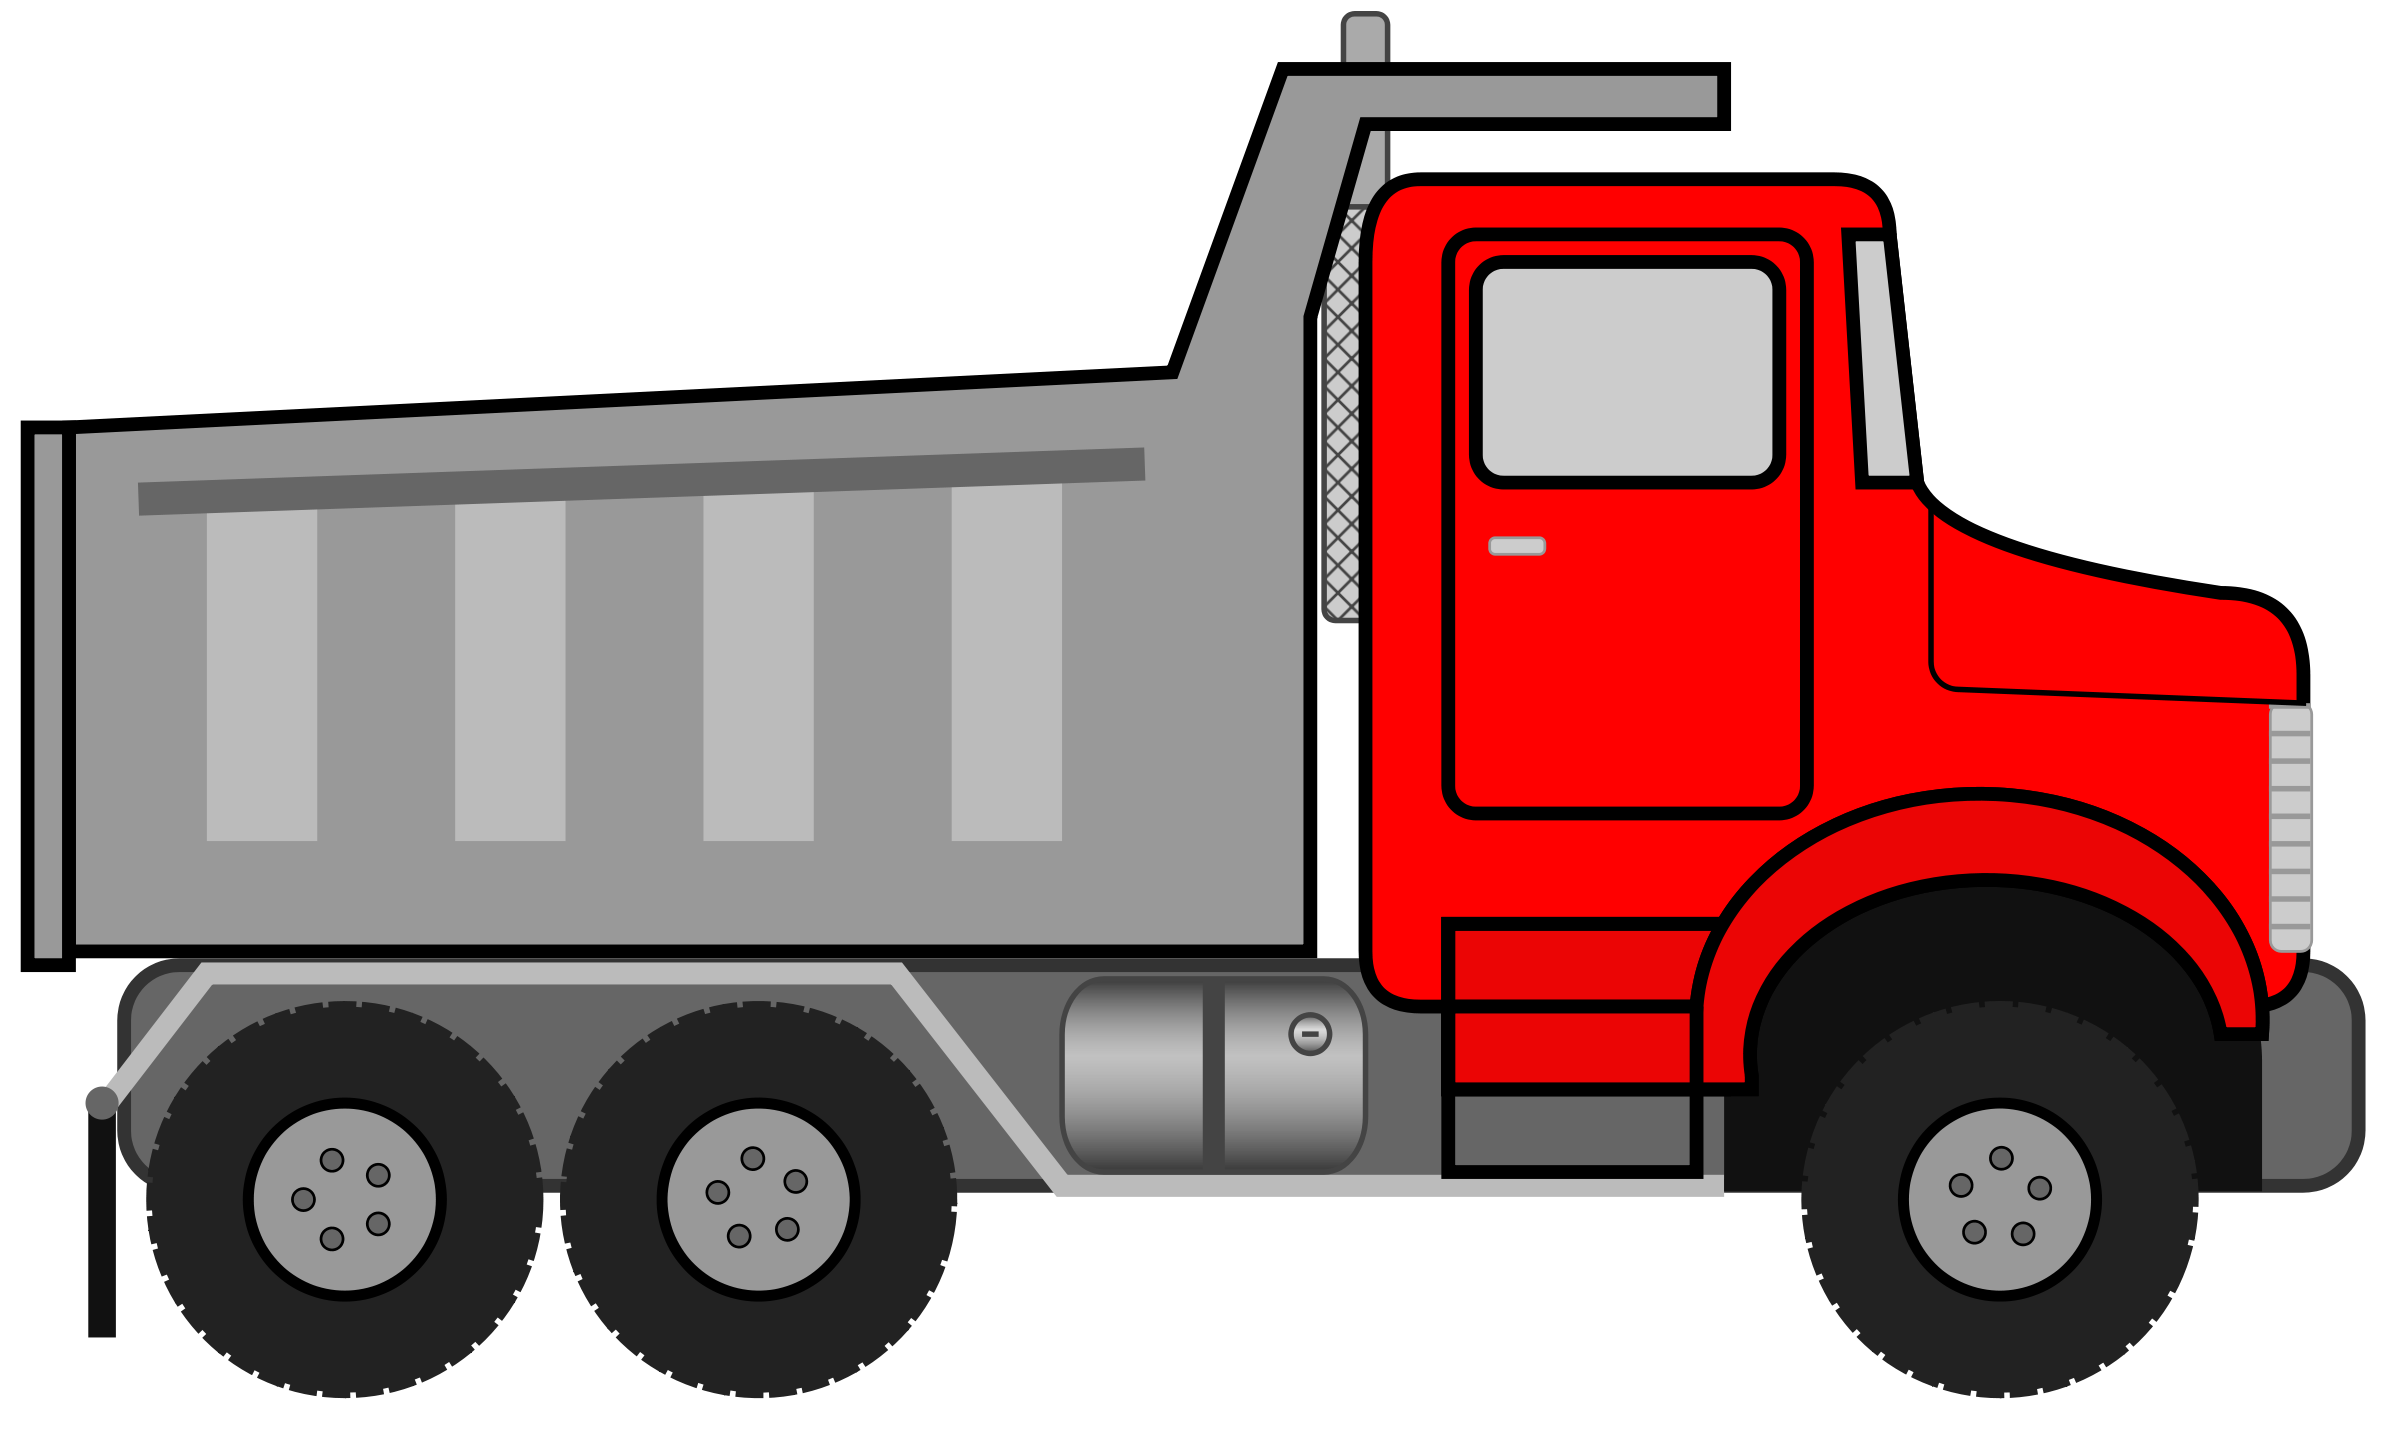 semi svg library. Dump clipart sand truck graphic free download